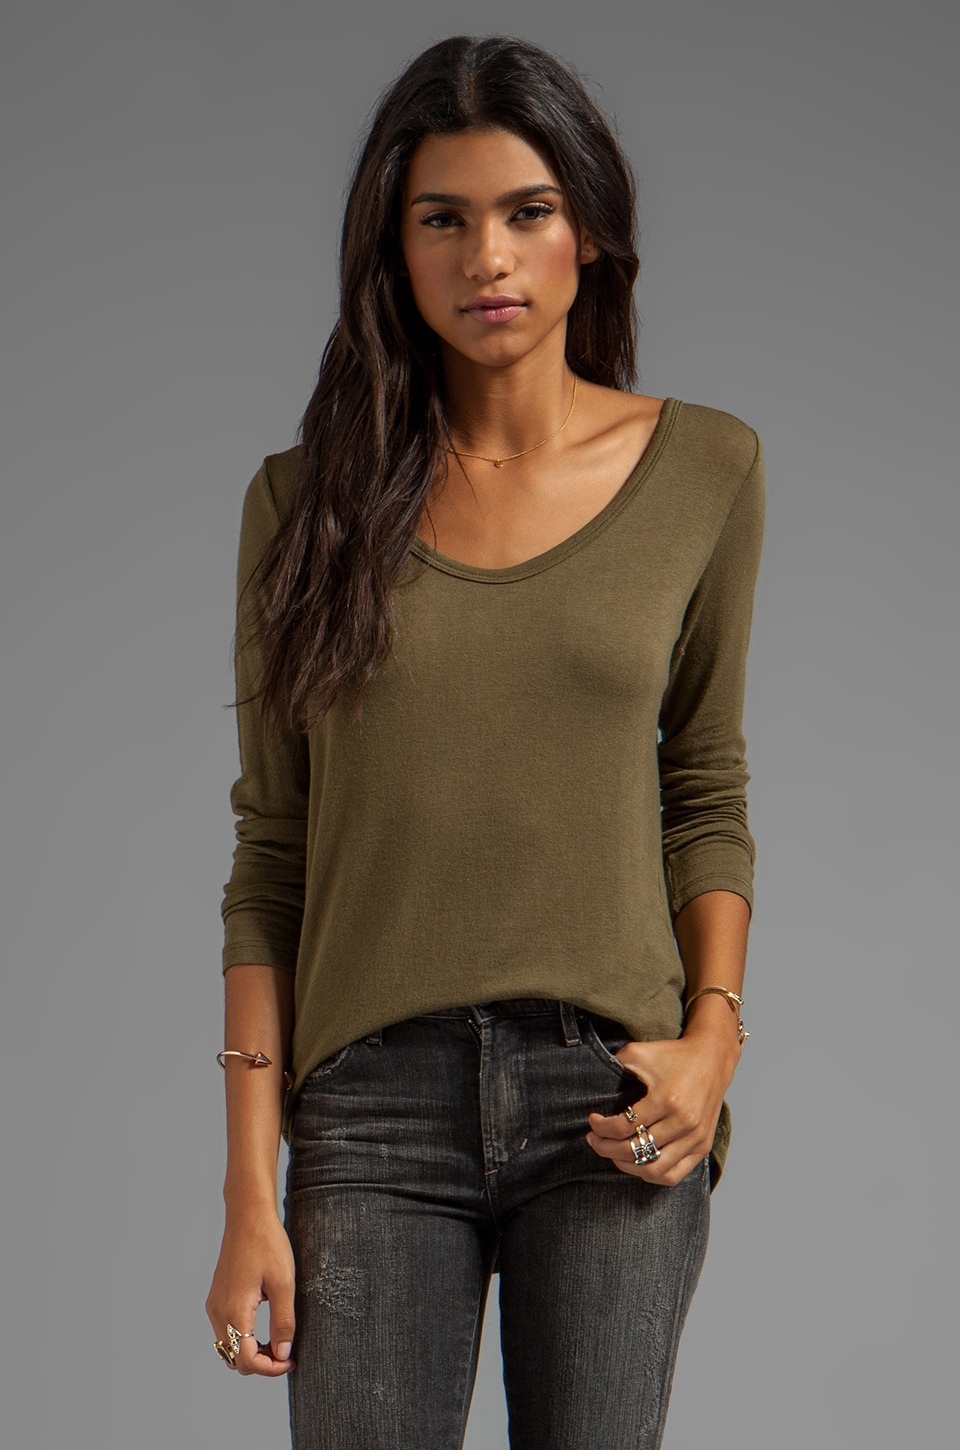 C&C California Stretch Luxe Knit Long Sleeve Hi-Lo Tee in Dark Olive